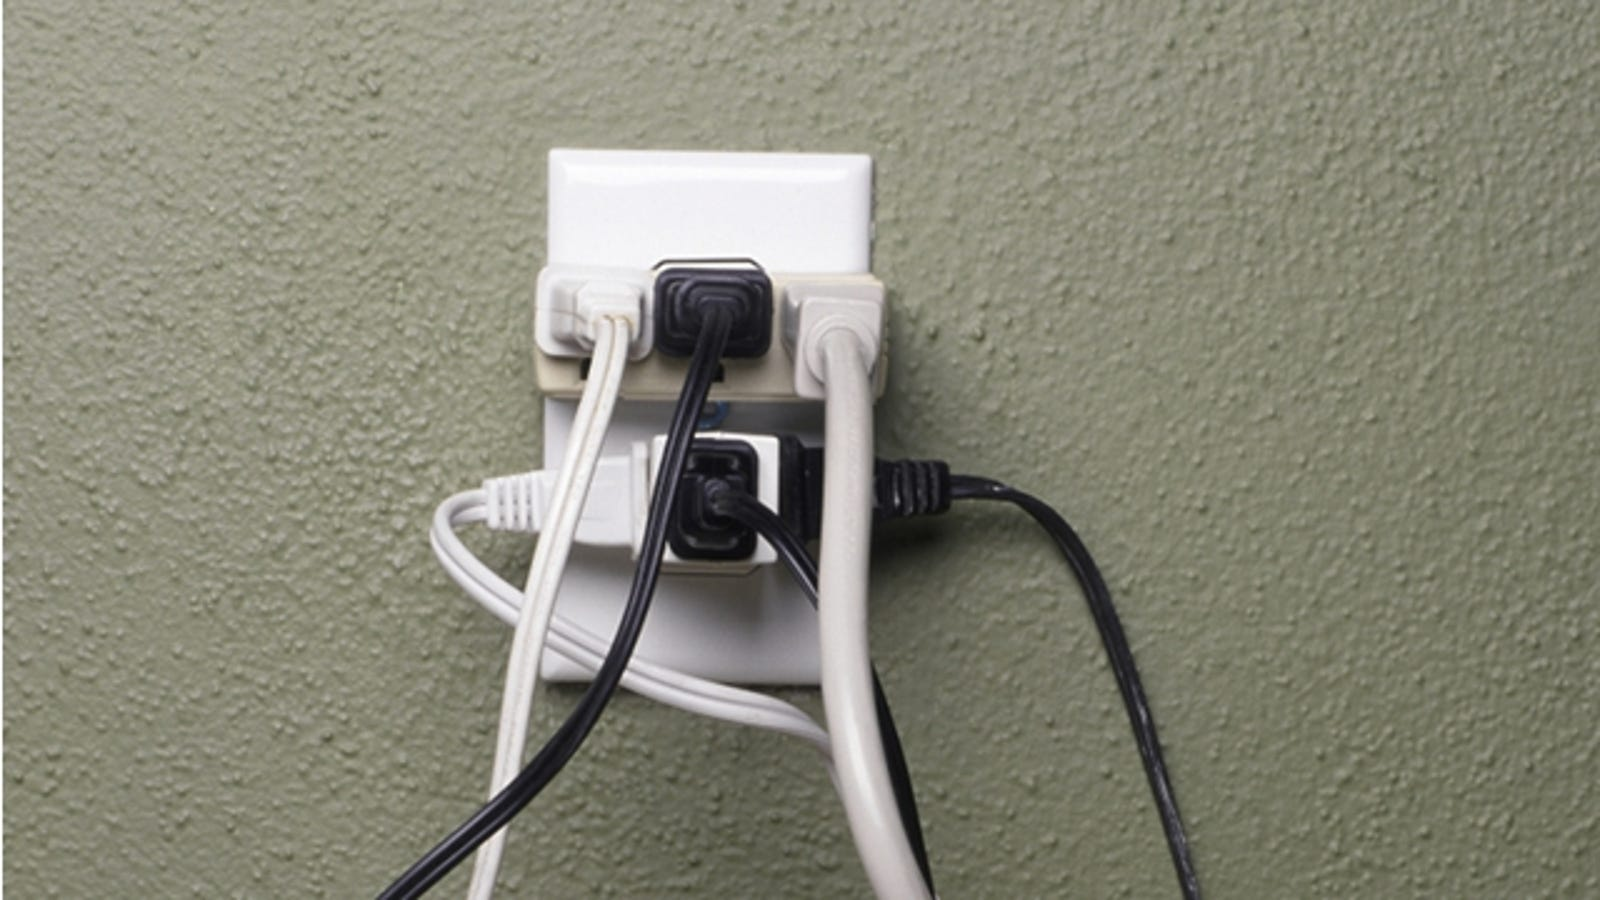 Learn The Limits Of Your Electrical Outlets To Avoid Fires Wiring 115v Ac Plug In